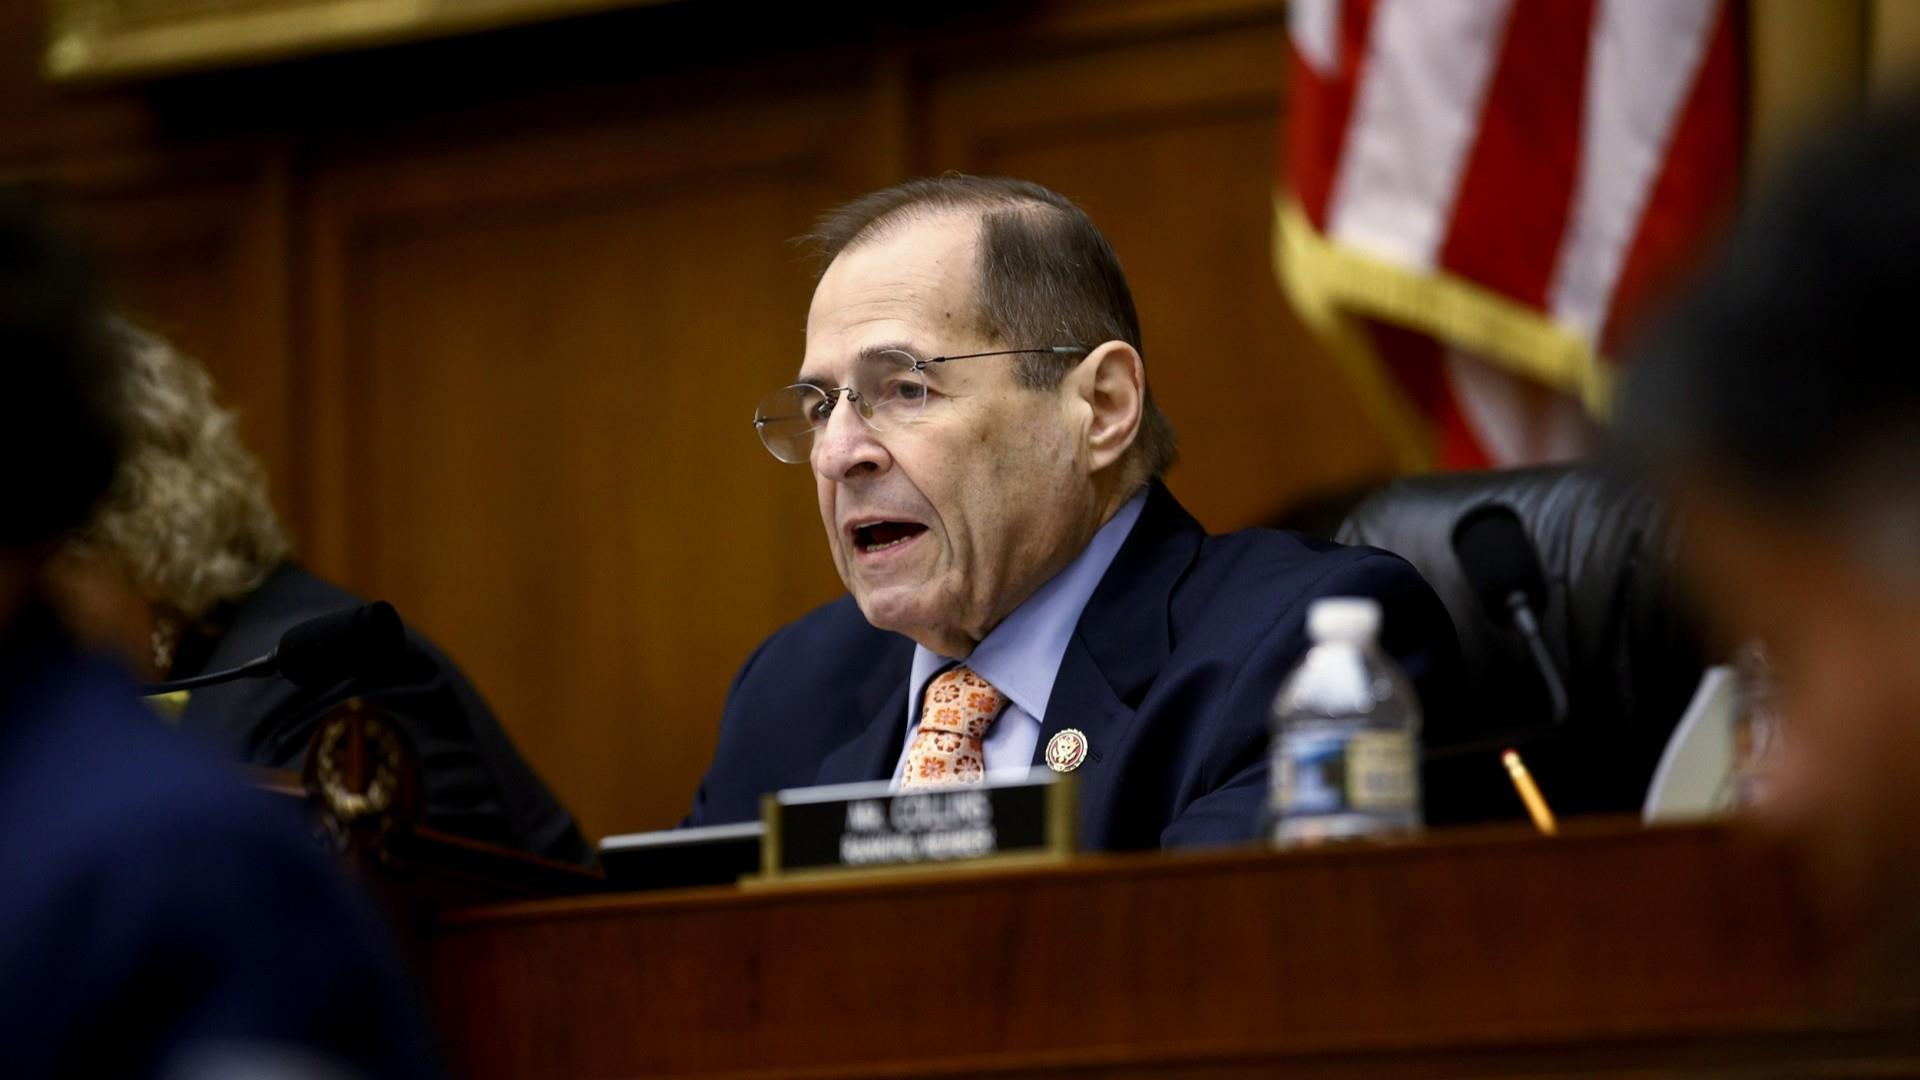 Nadler reaches agreement with DOJ to obtain key Mueller evidence of possible Trump obstruction